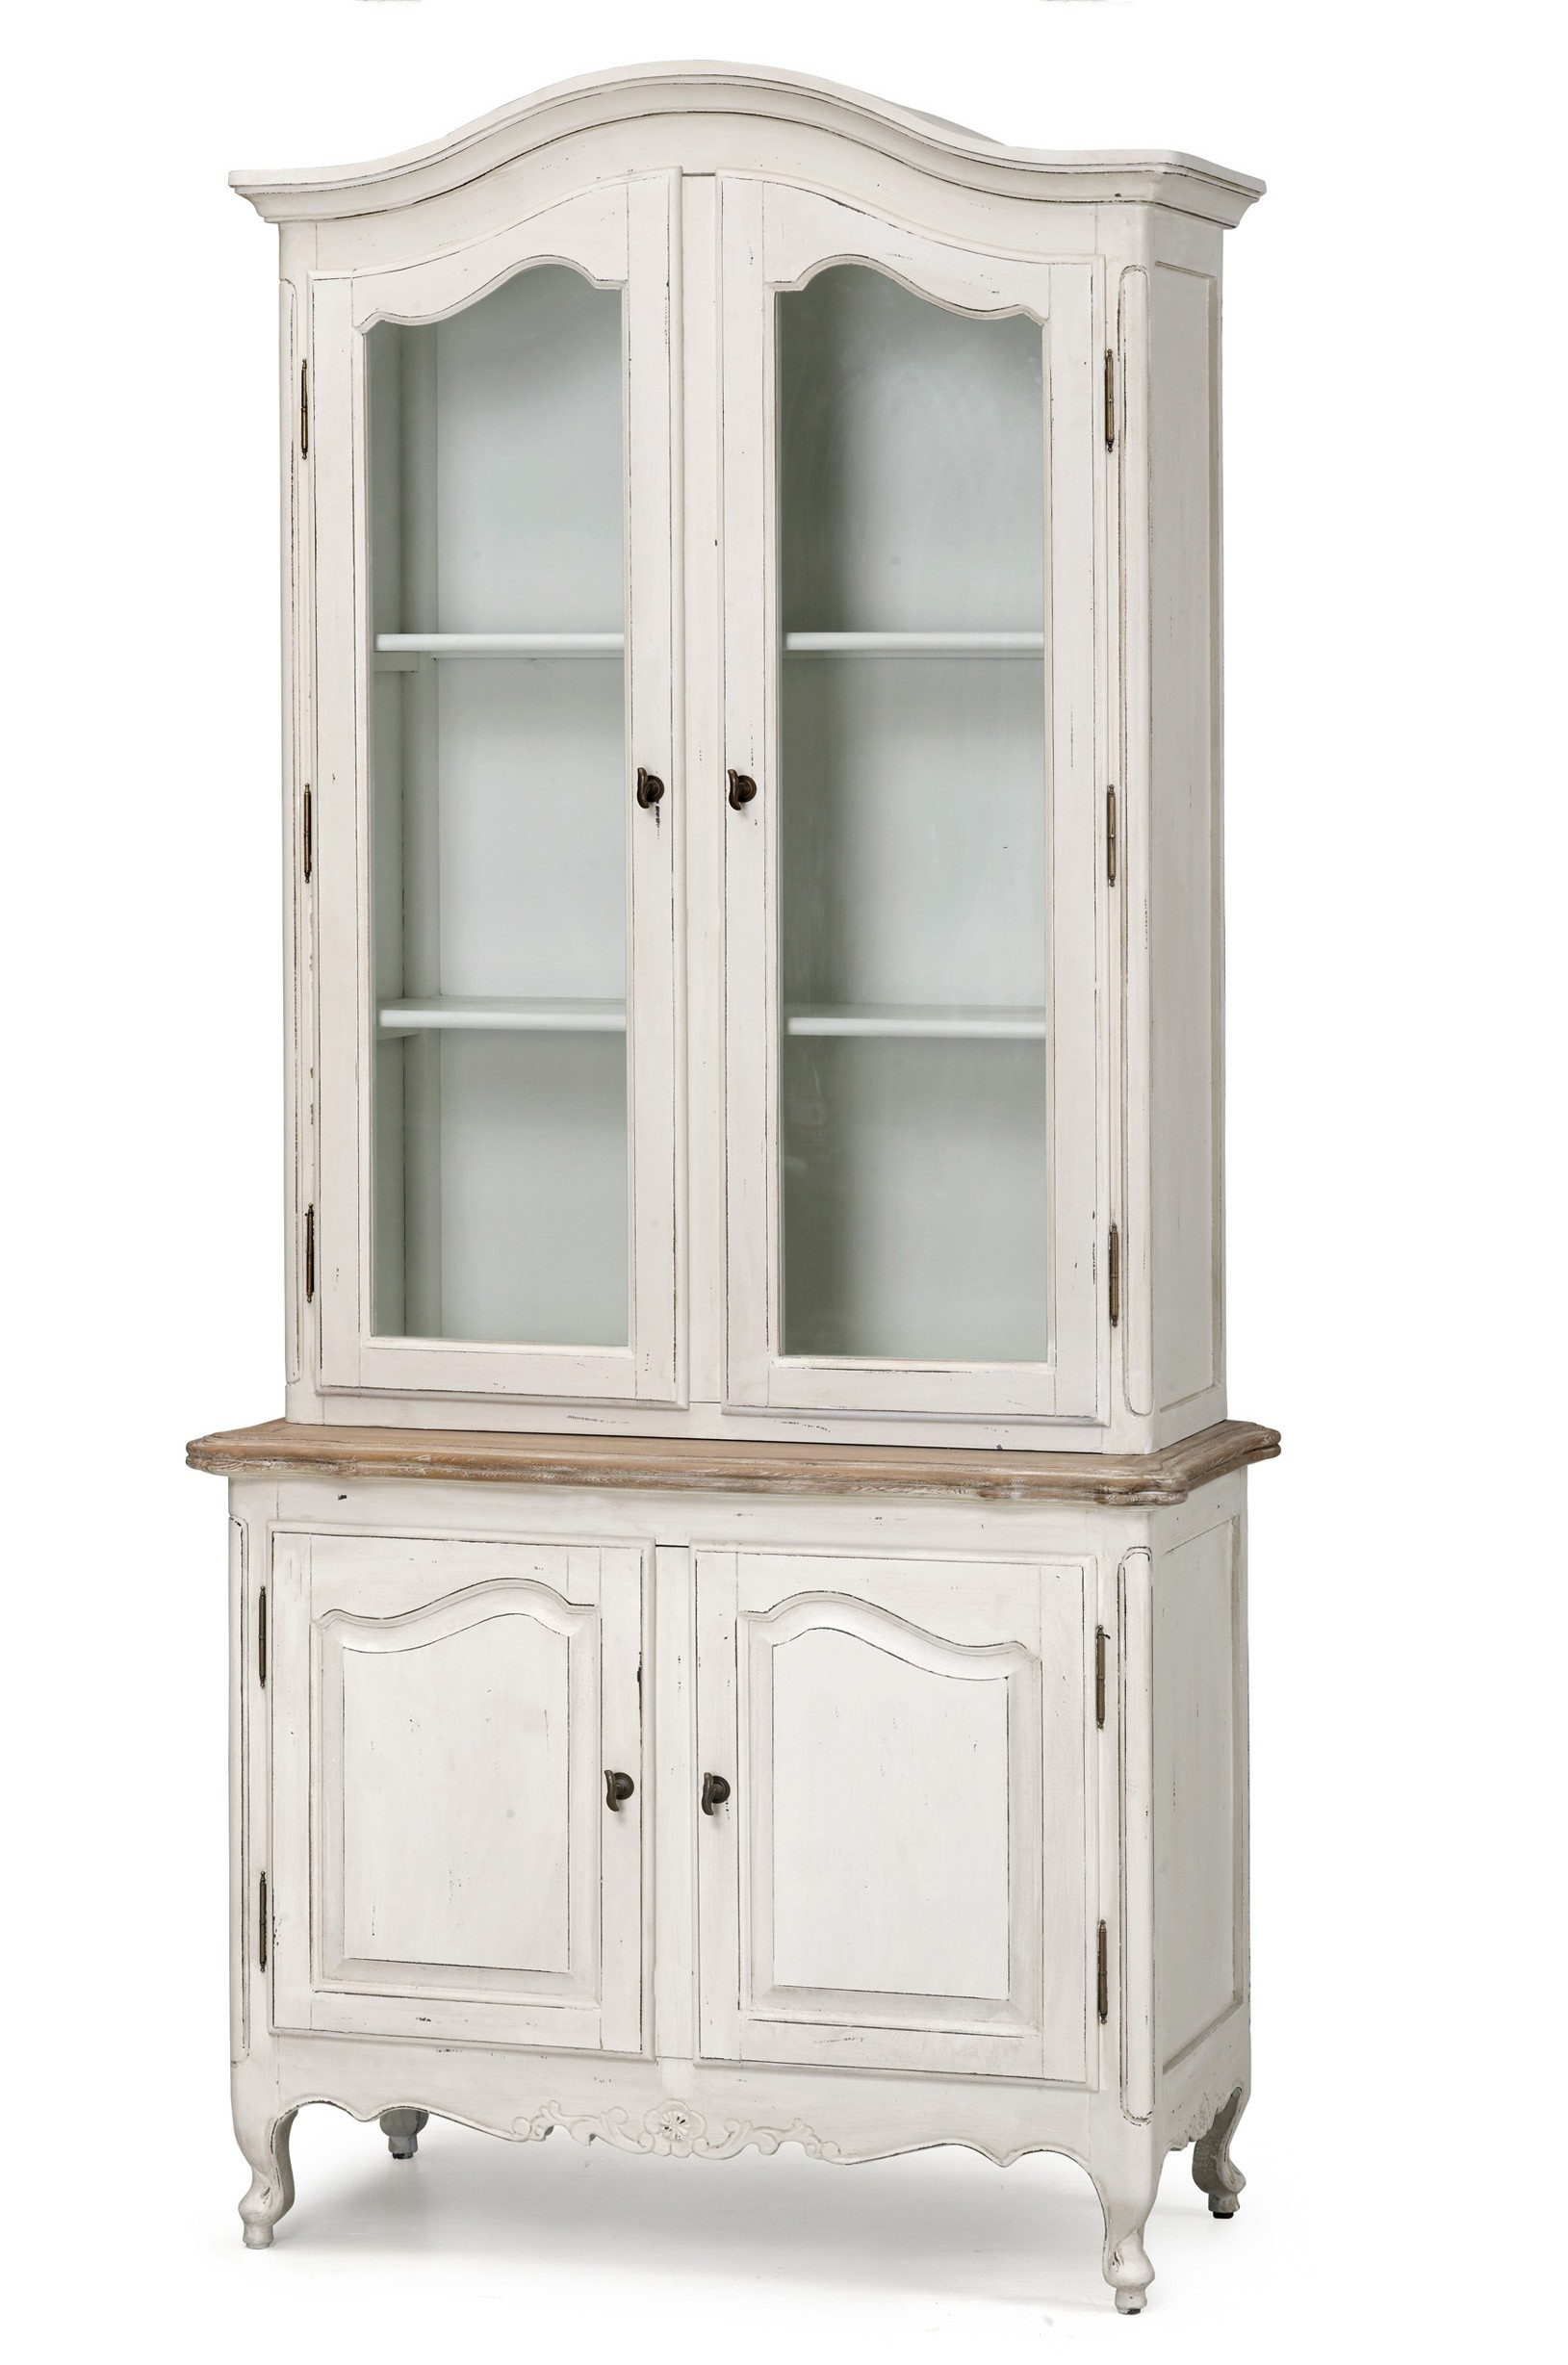 French Provincial Vintage Glass Display Buffet and Hutch